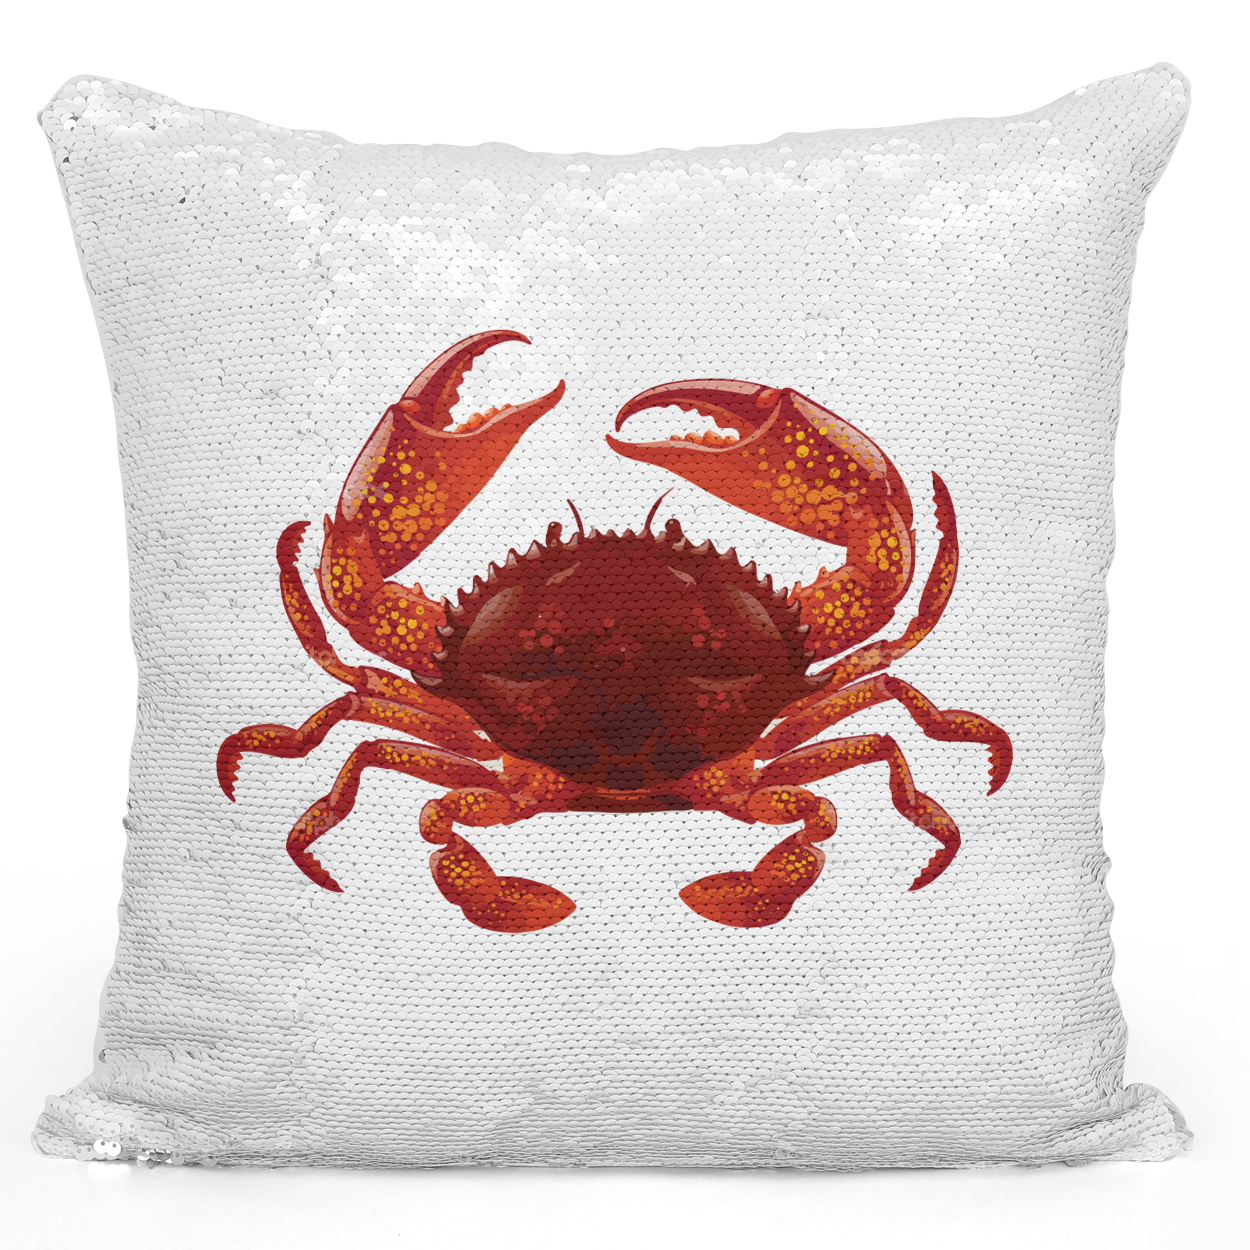 Sequin Pillow Magic Mermaid Throw Pillow Red Crab Nautical Sea Life Beachhouse Pillow - Pure White Printed 16 x 16 inch Square Home Decor Couch Pillow Loud Universe